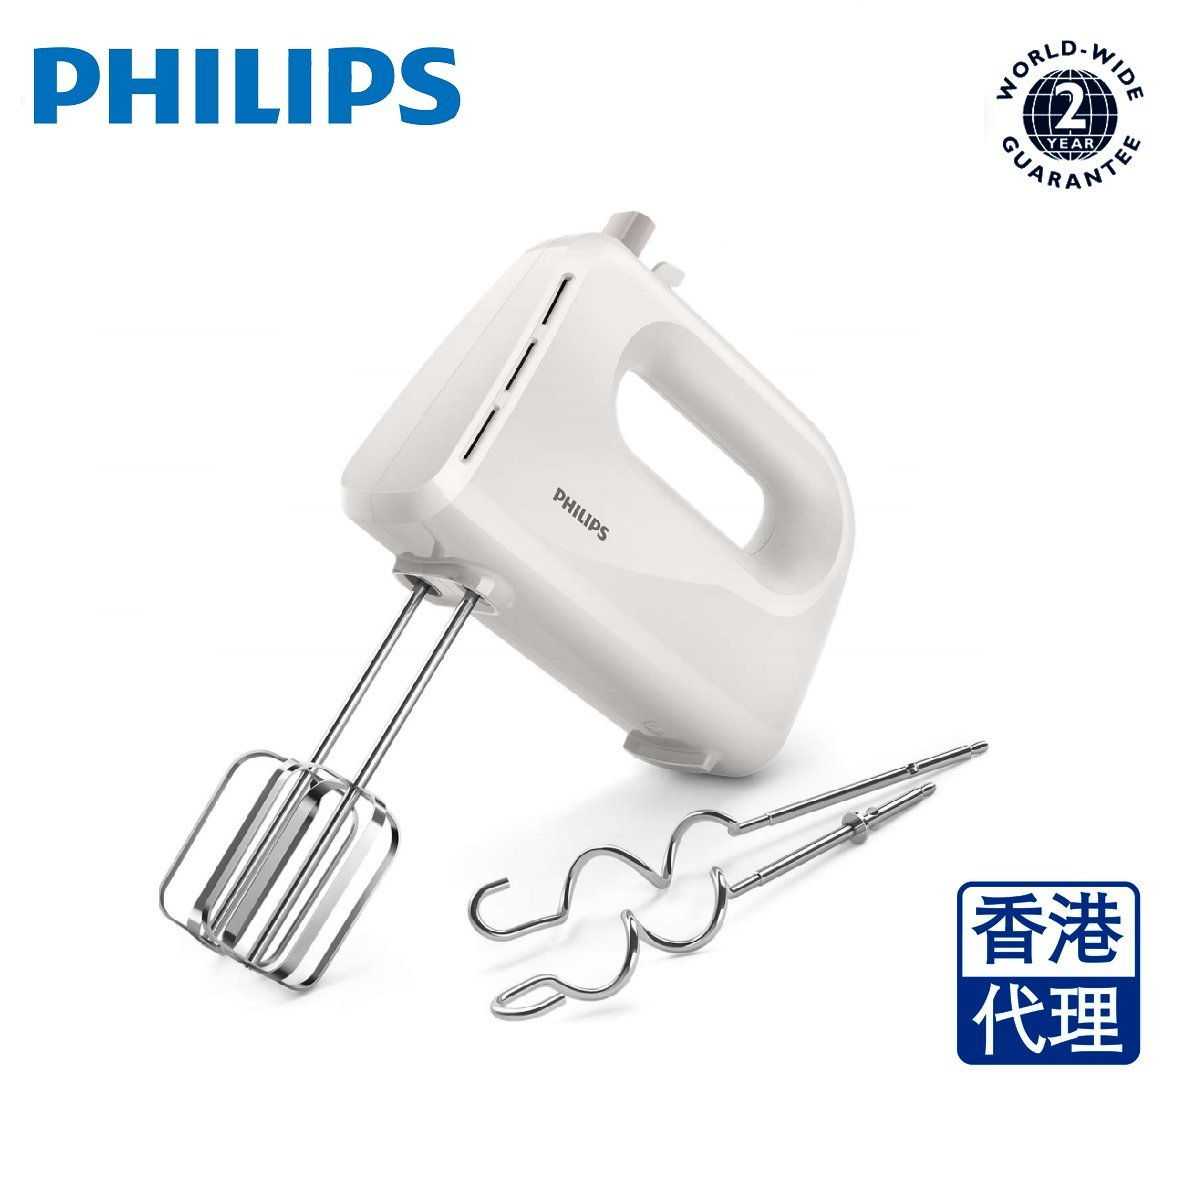 Daily Collection Philips Daily 系列攪拌器 HR3705